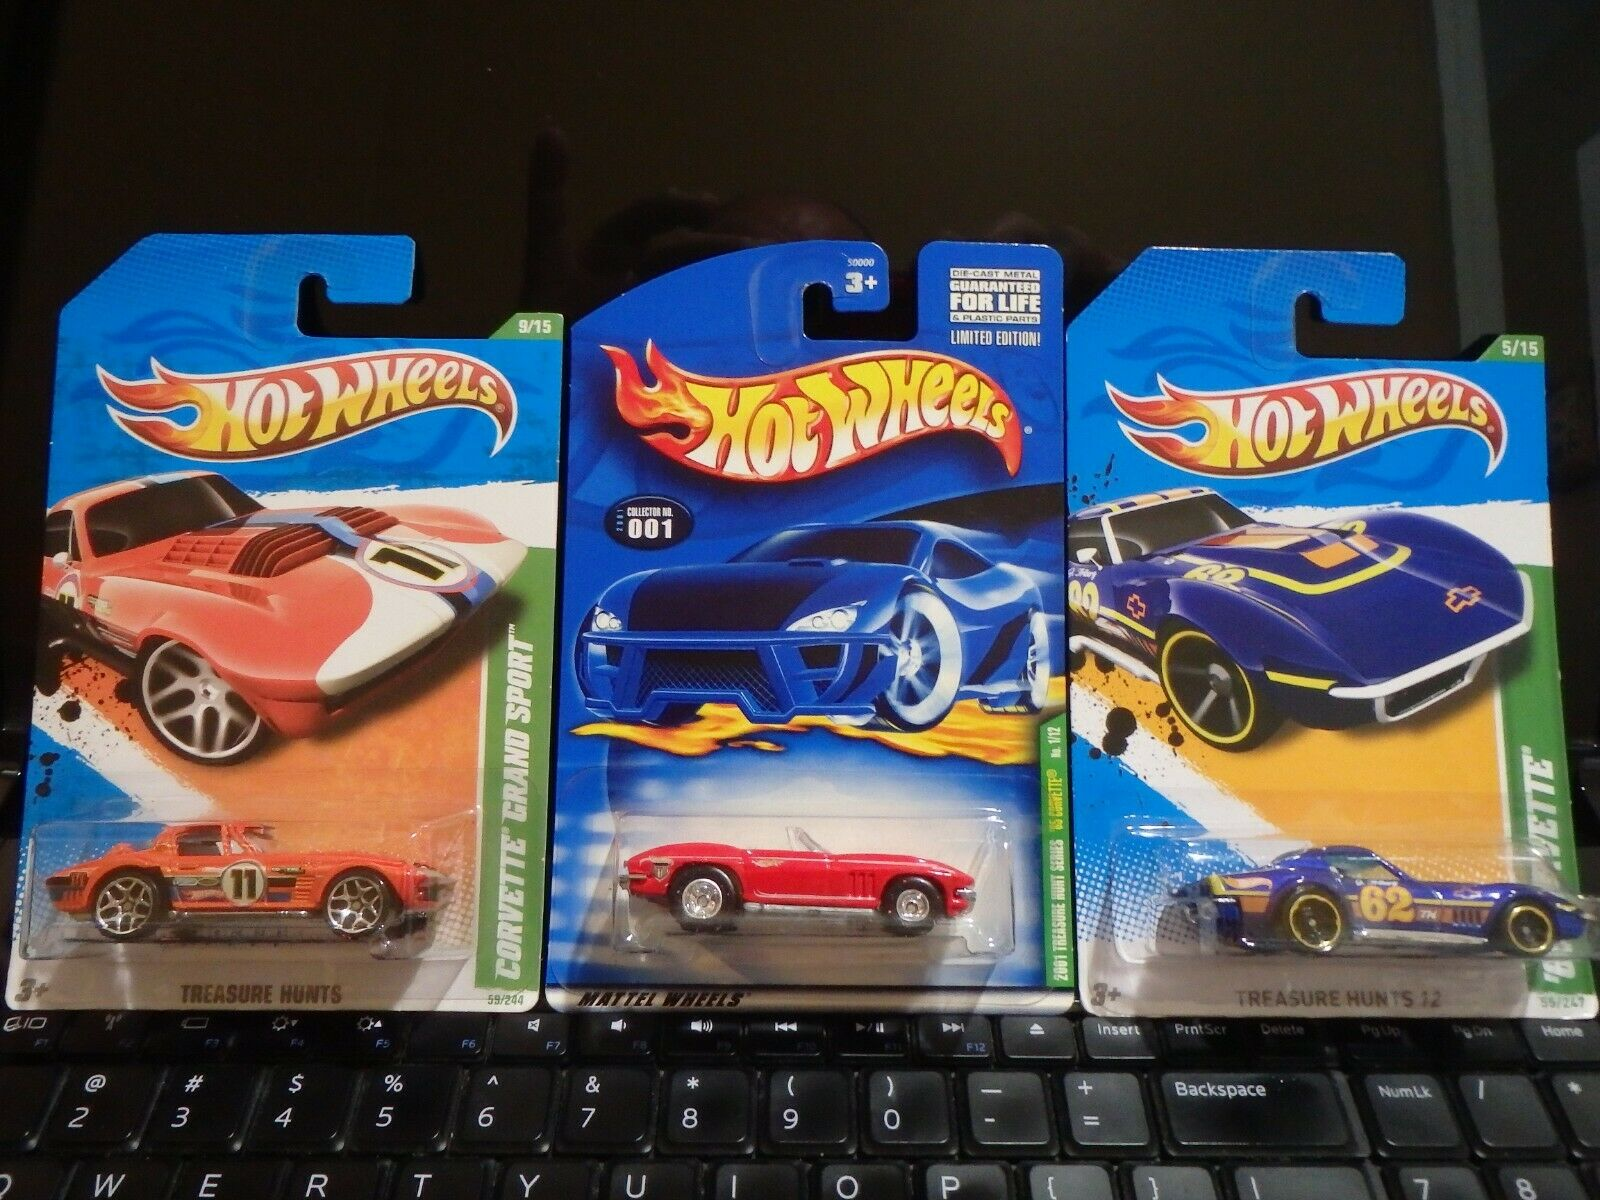 3 HIGHLY COLLECTIBLE HOT-WHEELS TREASURE HUNT CHEVY CORVETTES ALL IN ORG PKG - $29.98